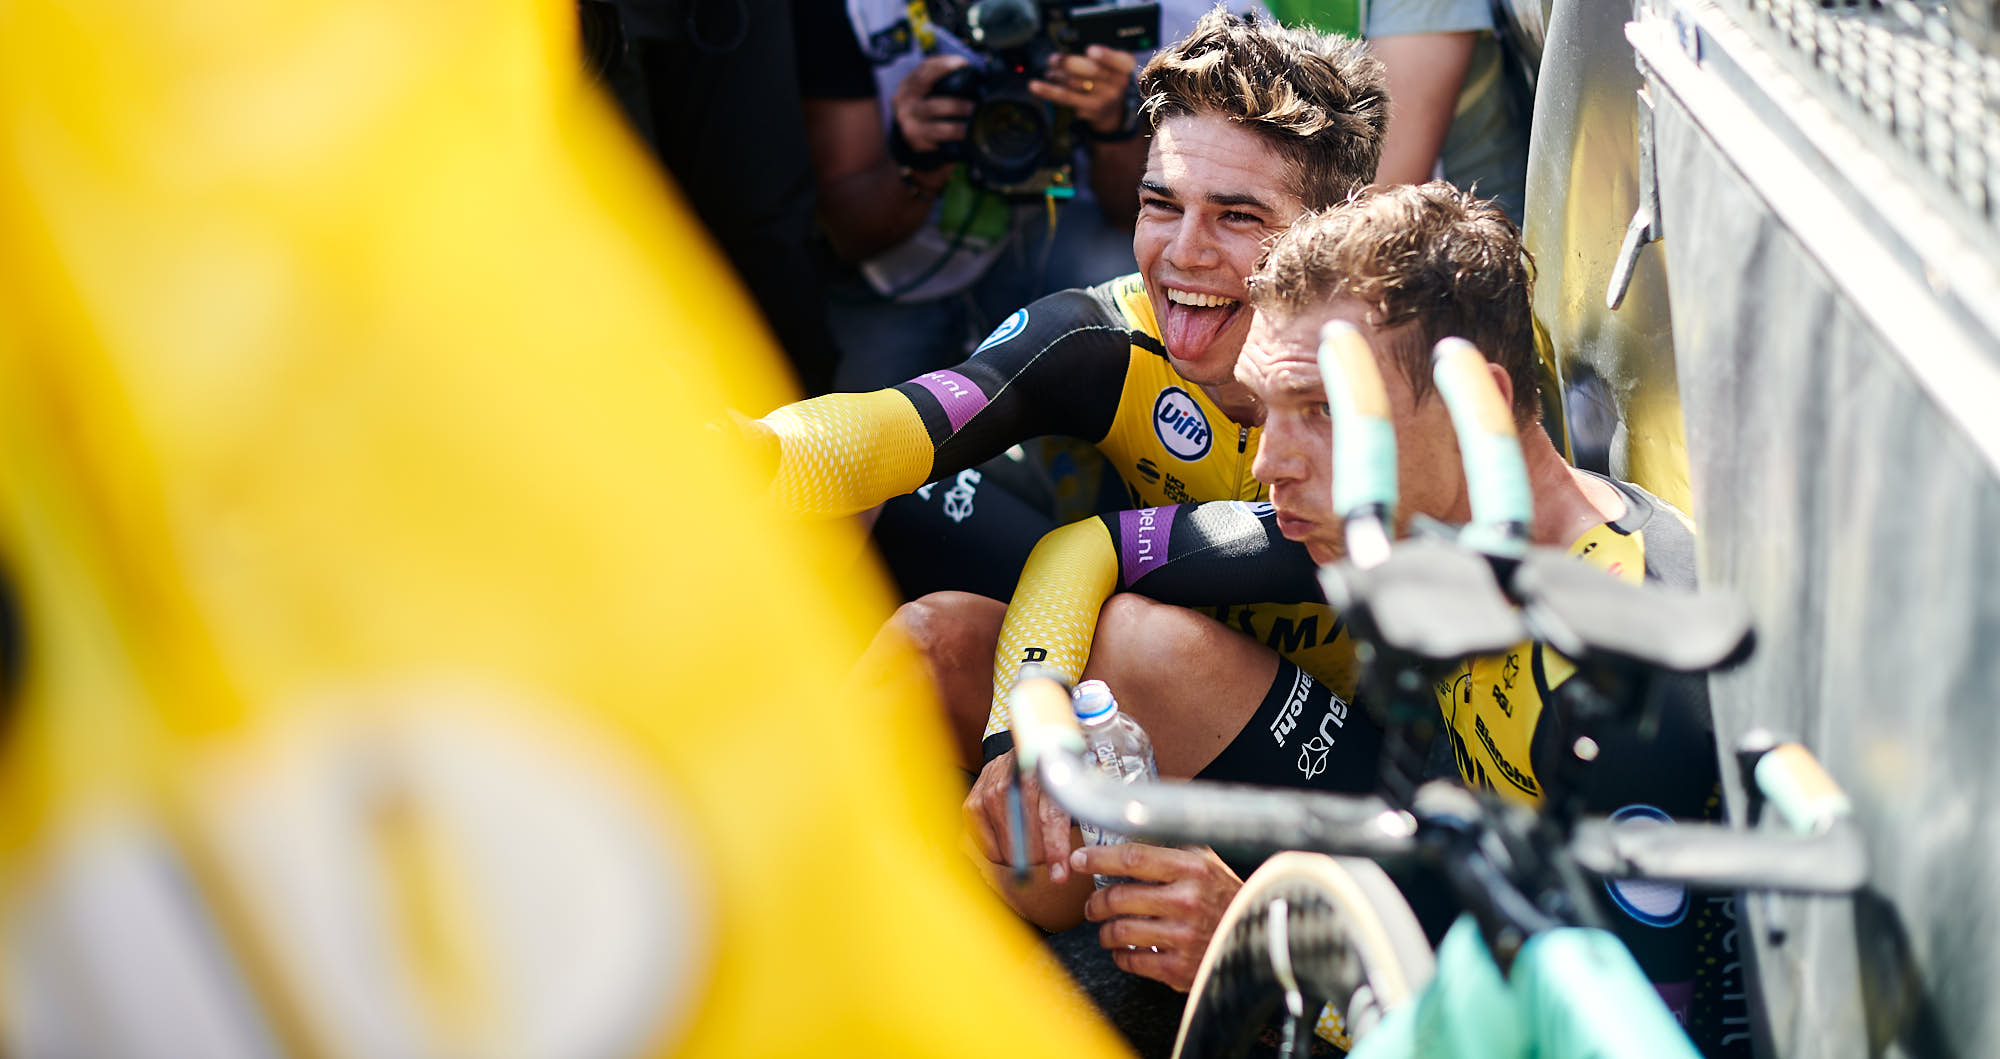 Belgian cyclist Wout van Aert celebrating after winning the 2019 Tour de France team time trial